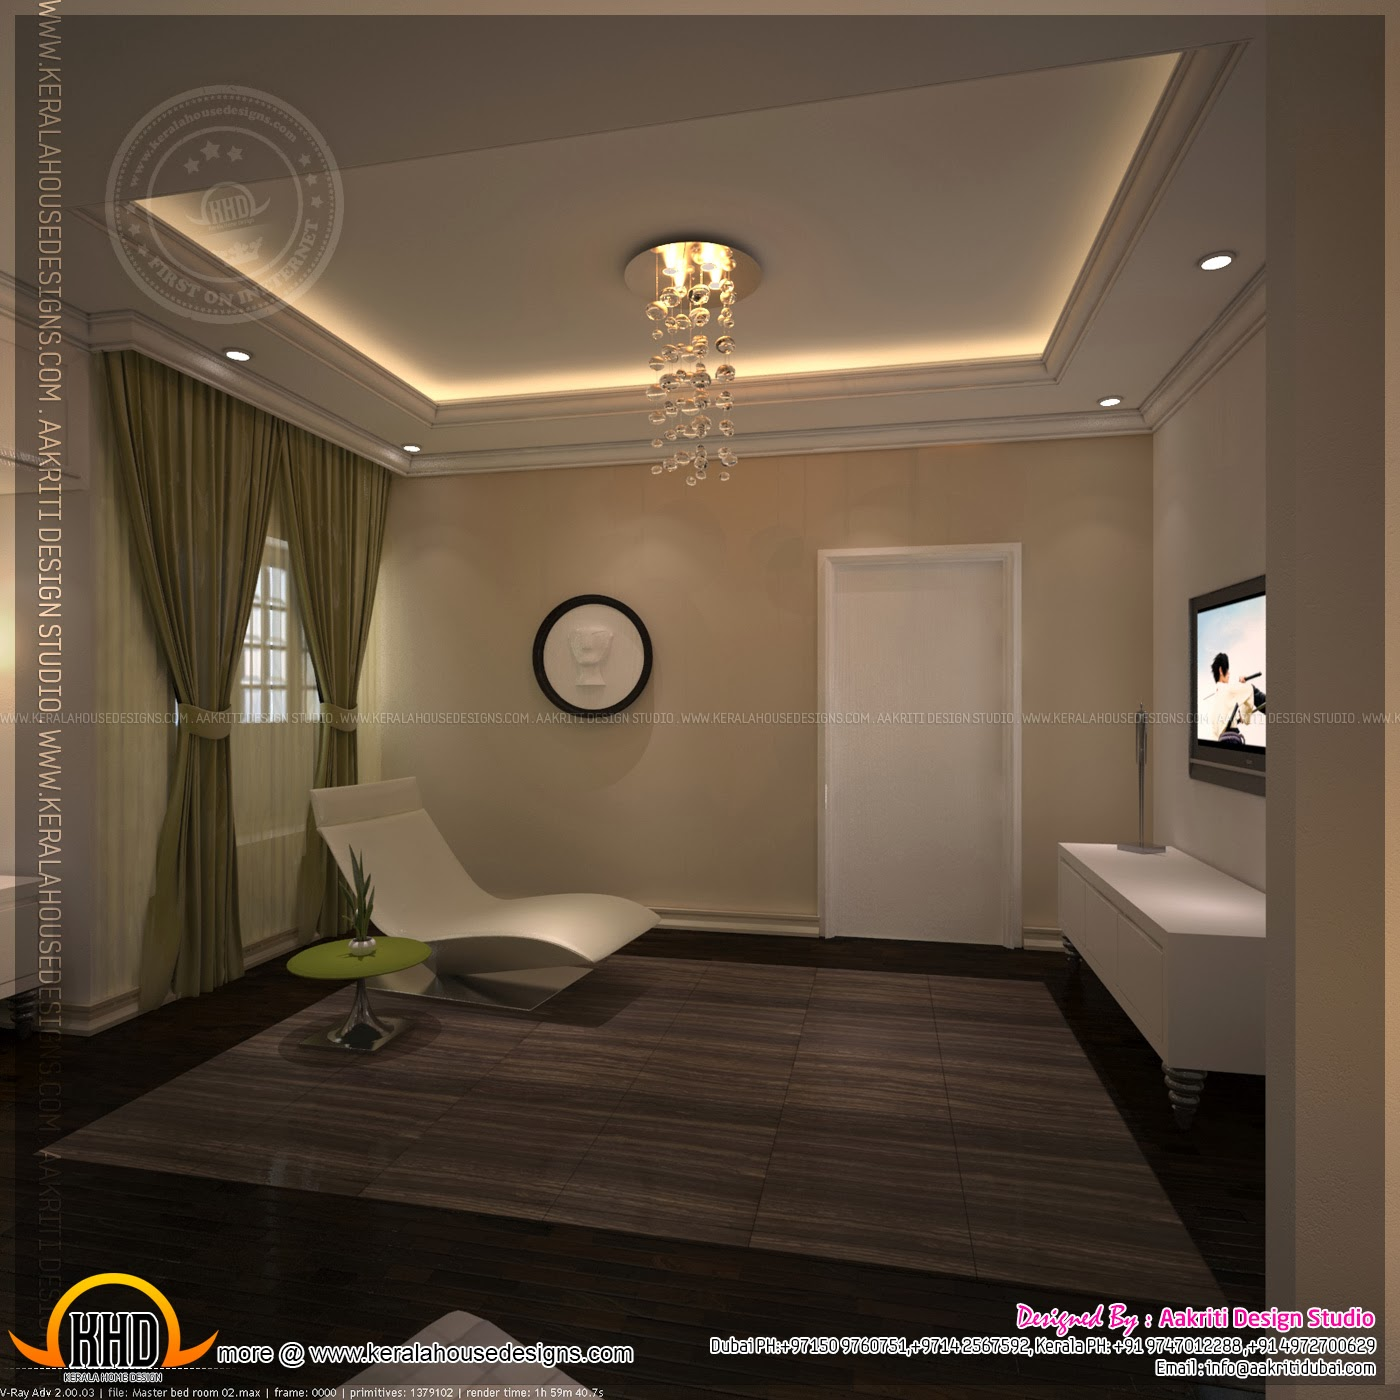 Master bedroom and bathroom interior design indian house plans Master bedroom with toilet design